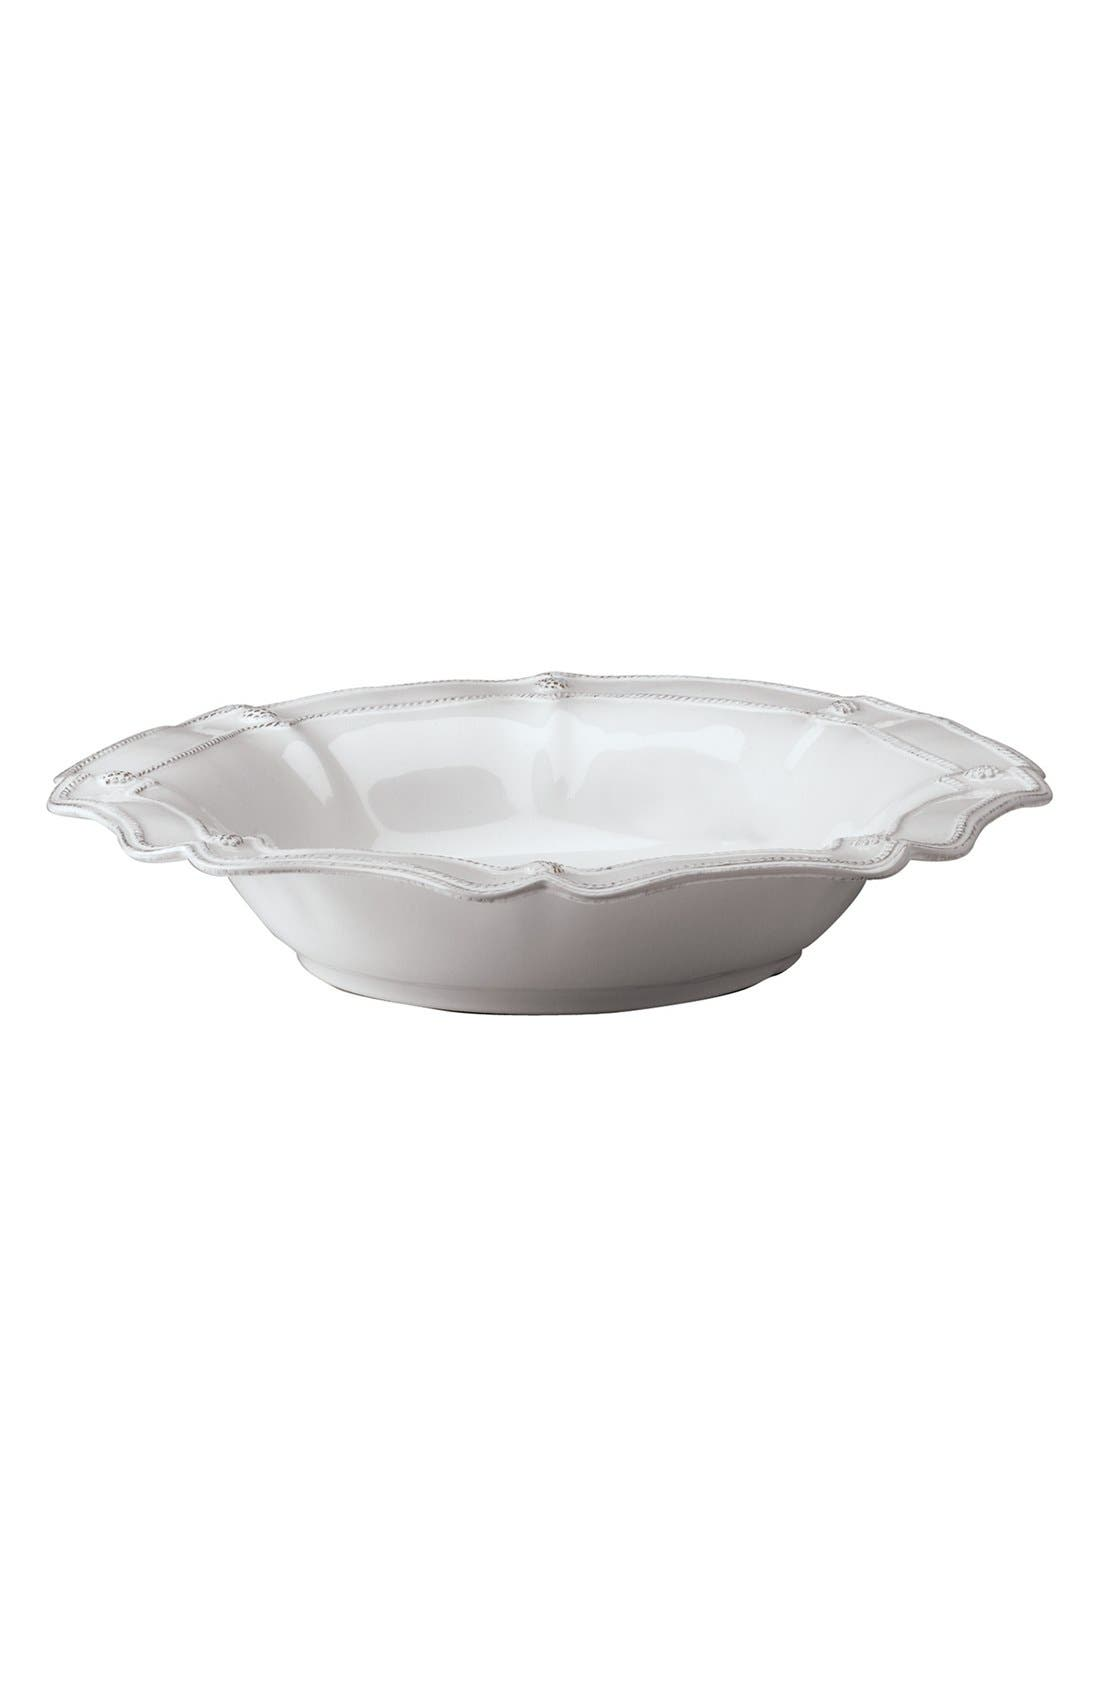 'Berry and Thread' Ceramic Serving Bowl,                         Main,                         color, 100